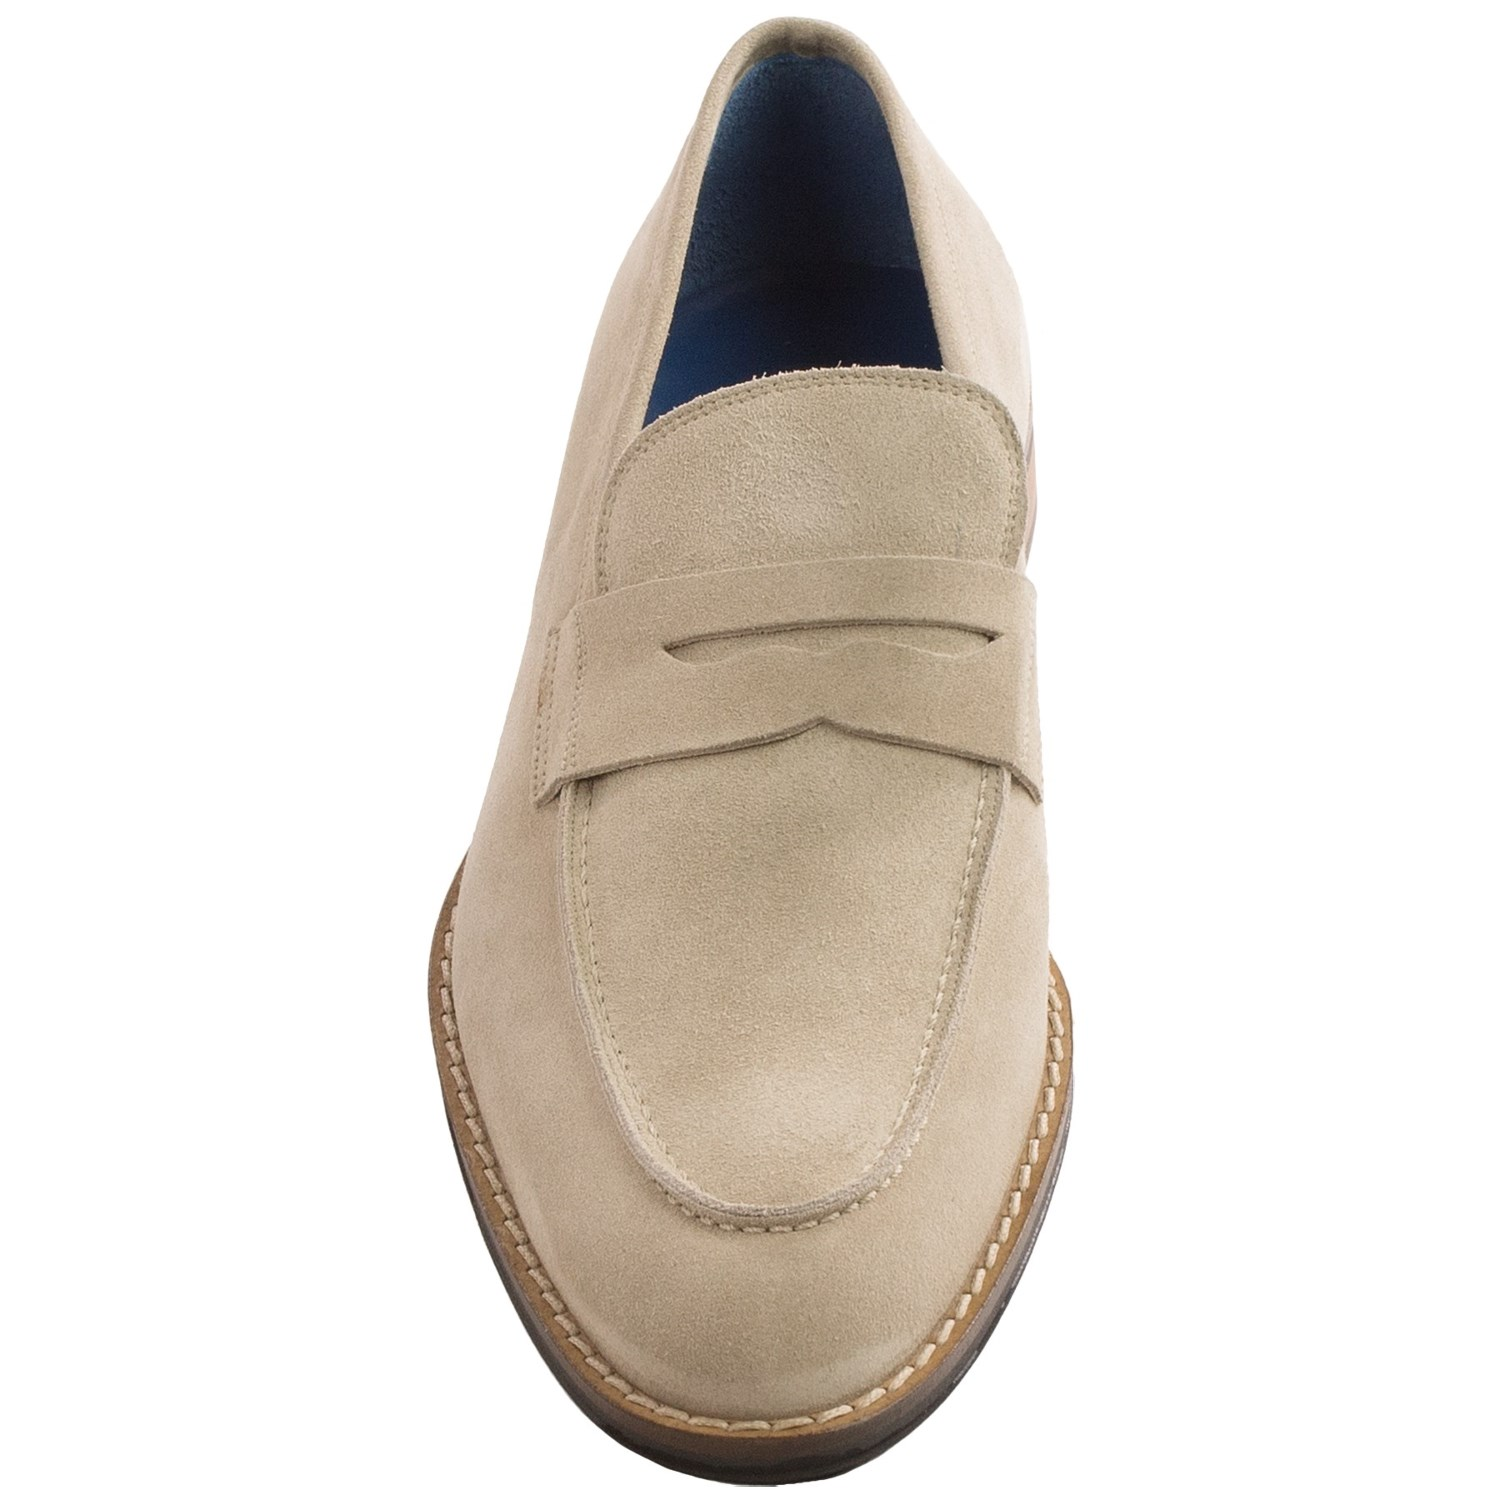 matches. ($ - $) Find great deals on the latest styles of Orange loafers suede. Compare prices & save money on Men's Shoes.